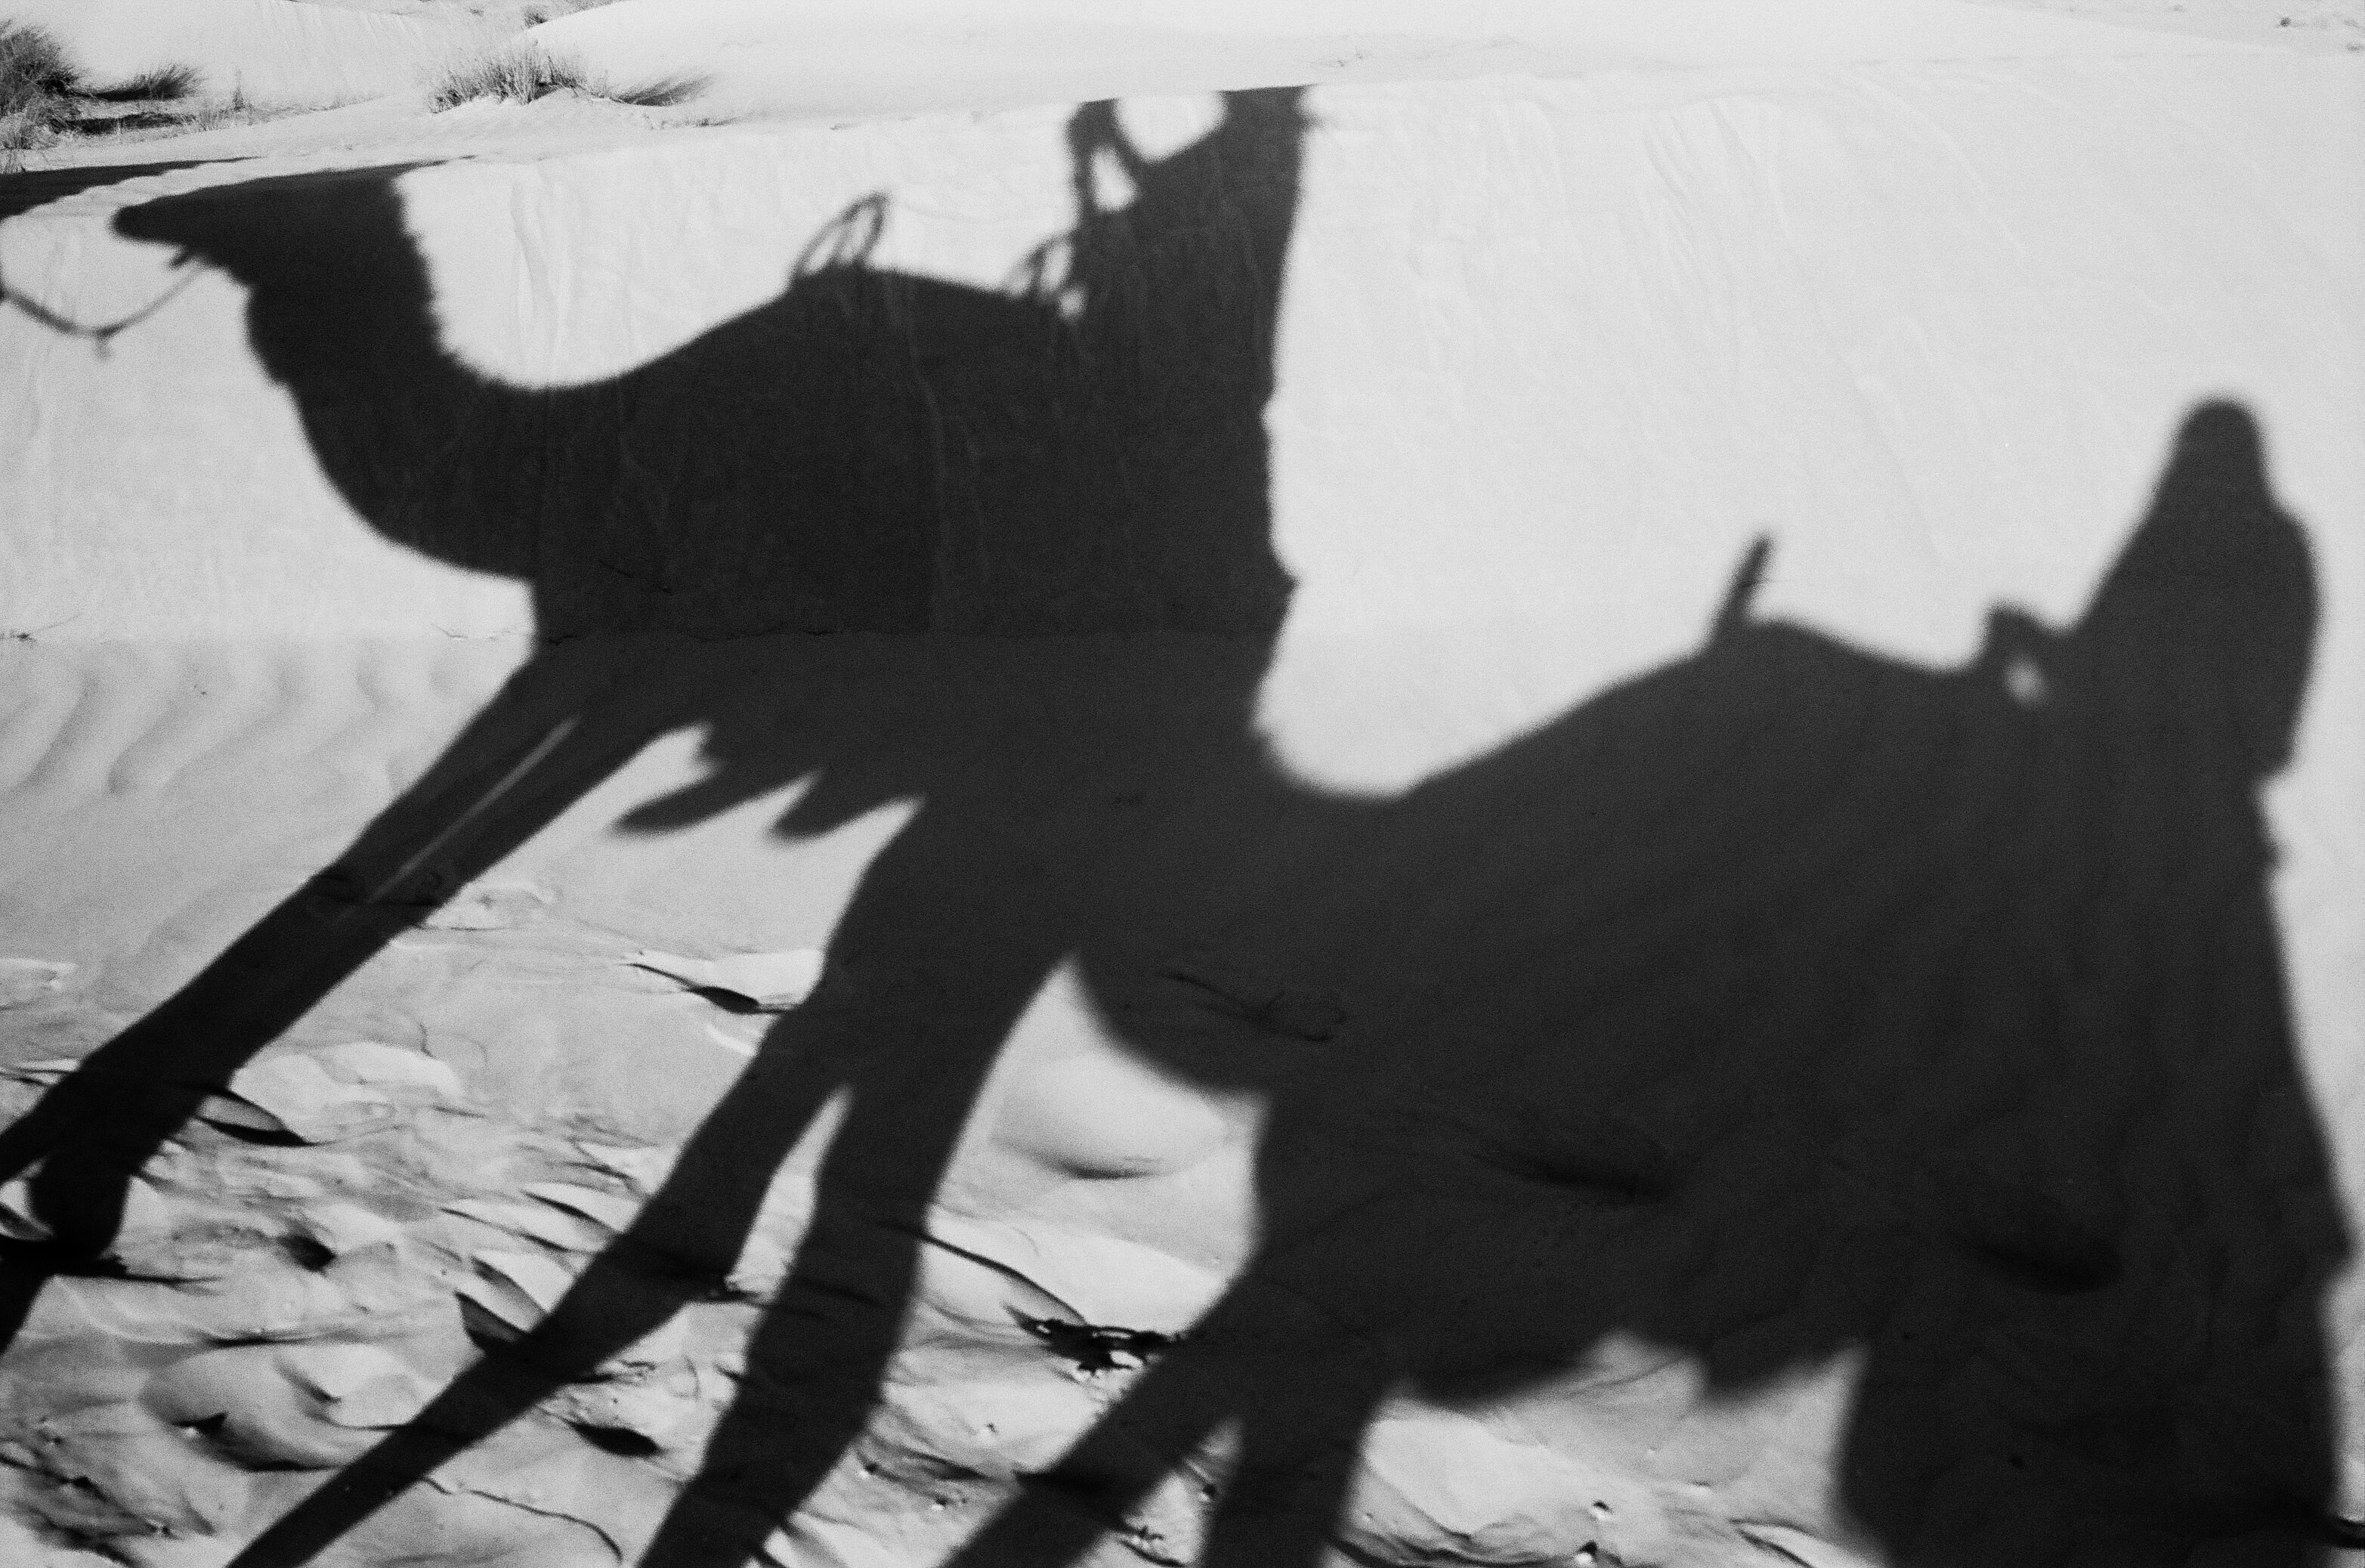 silhouette of camels standing on desert during daytime